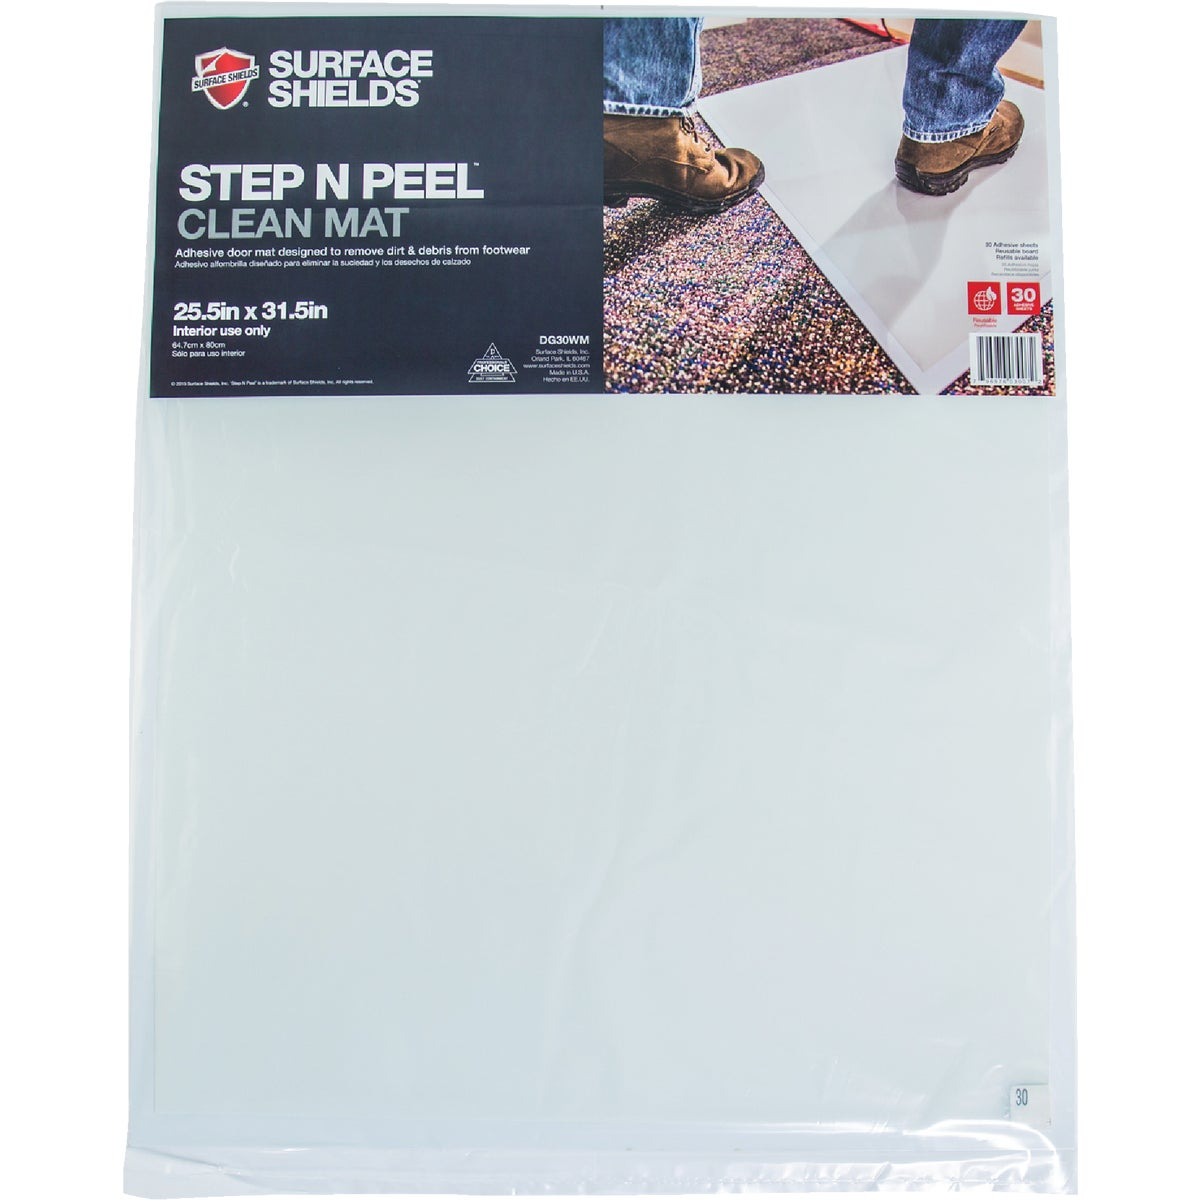 STEP N PEEL MAT